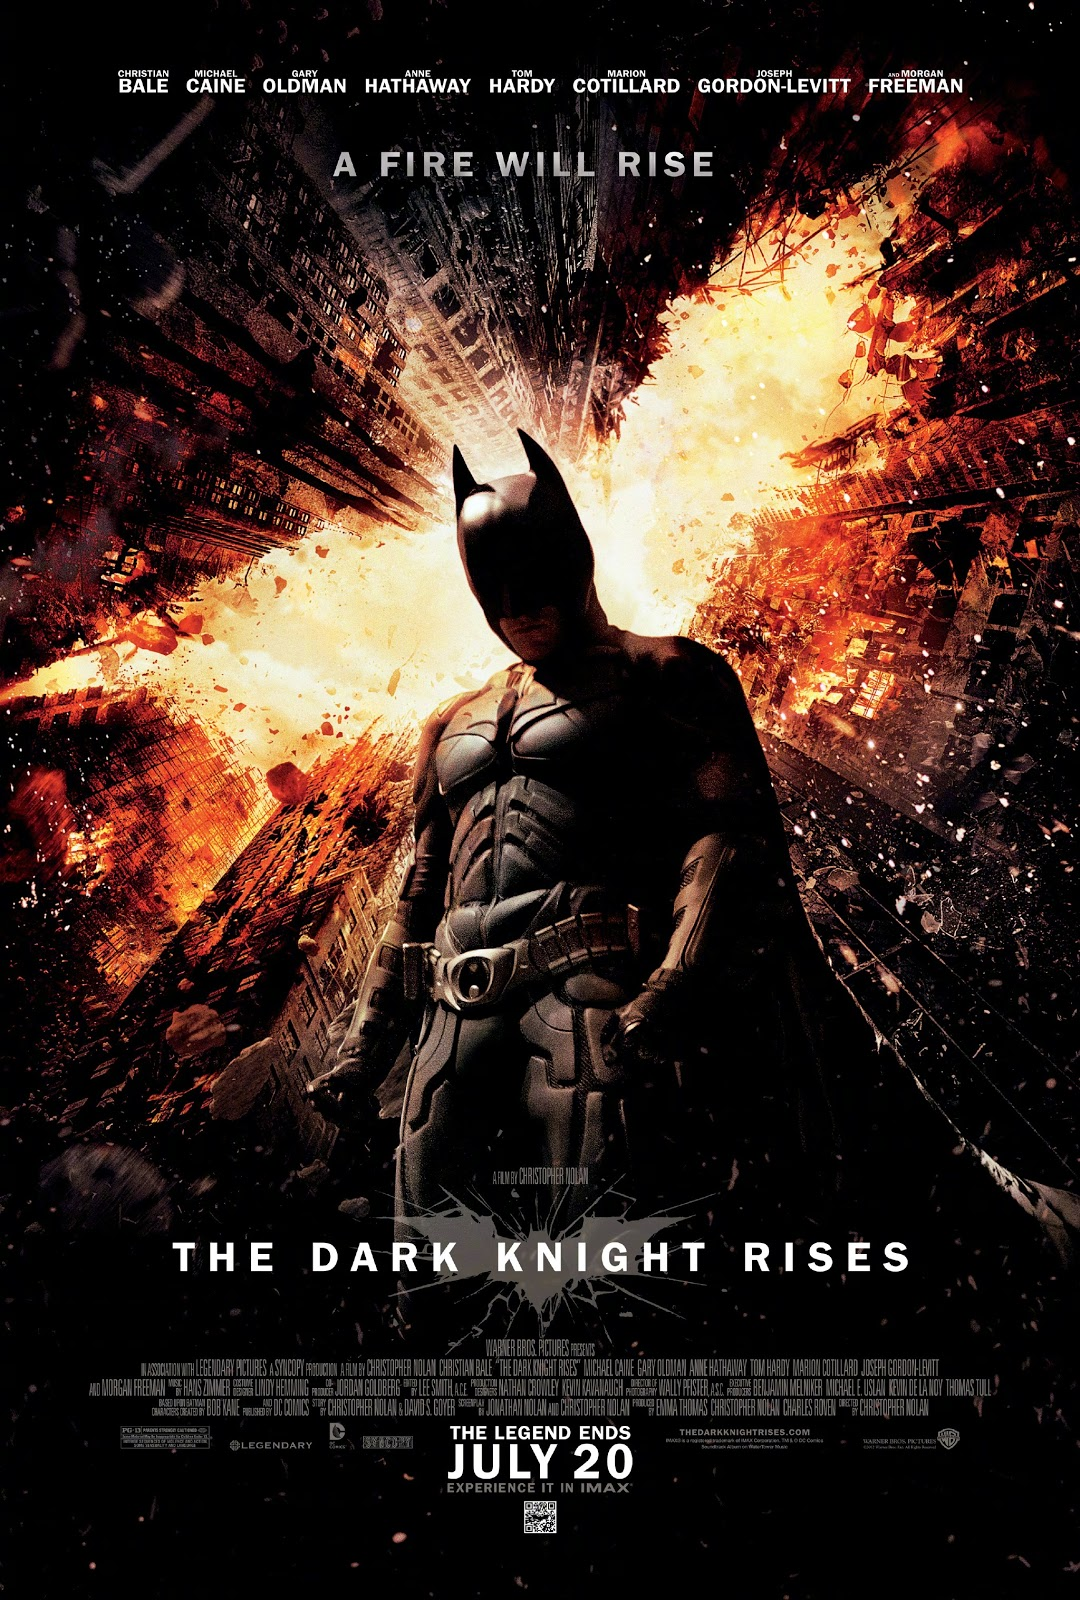 BATMAN THE DARK KNIGHT RISES POSTER TRAILER VIDEO CRISTOPHER NOLAN CRISTIAN BALE